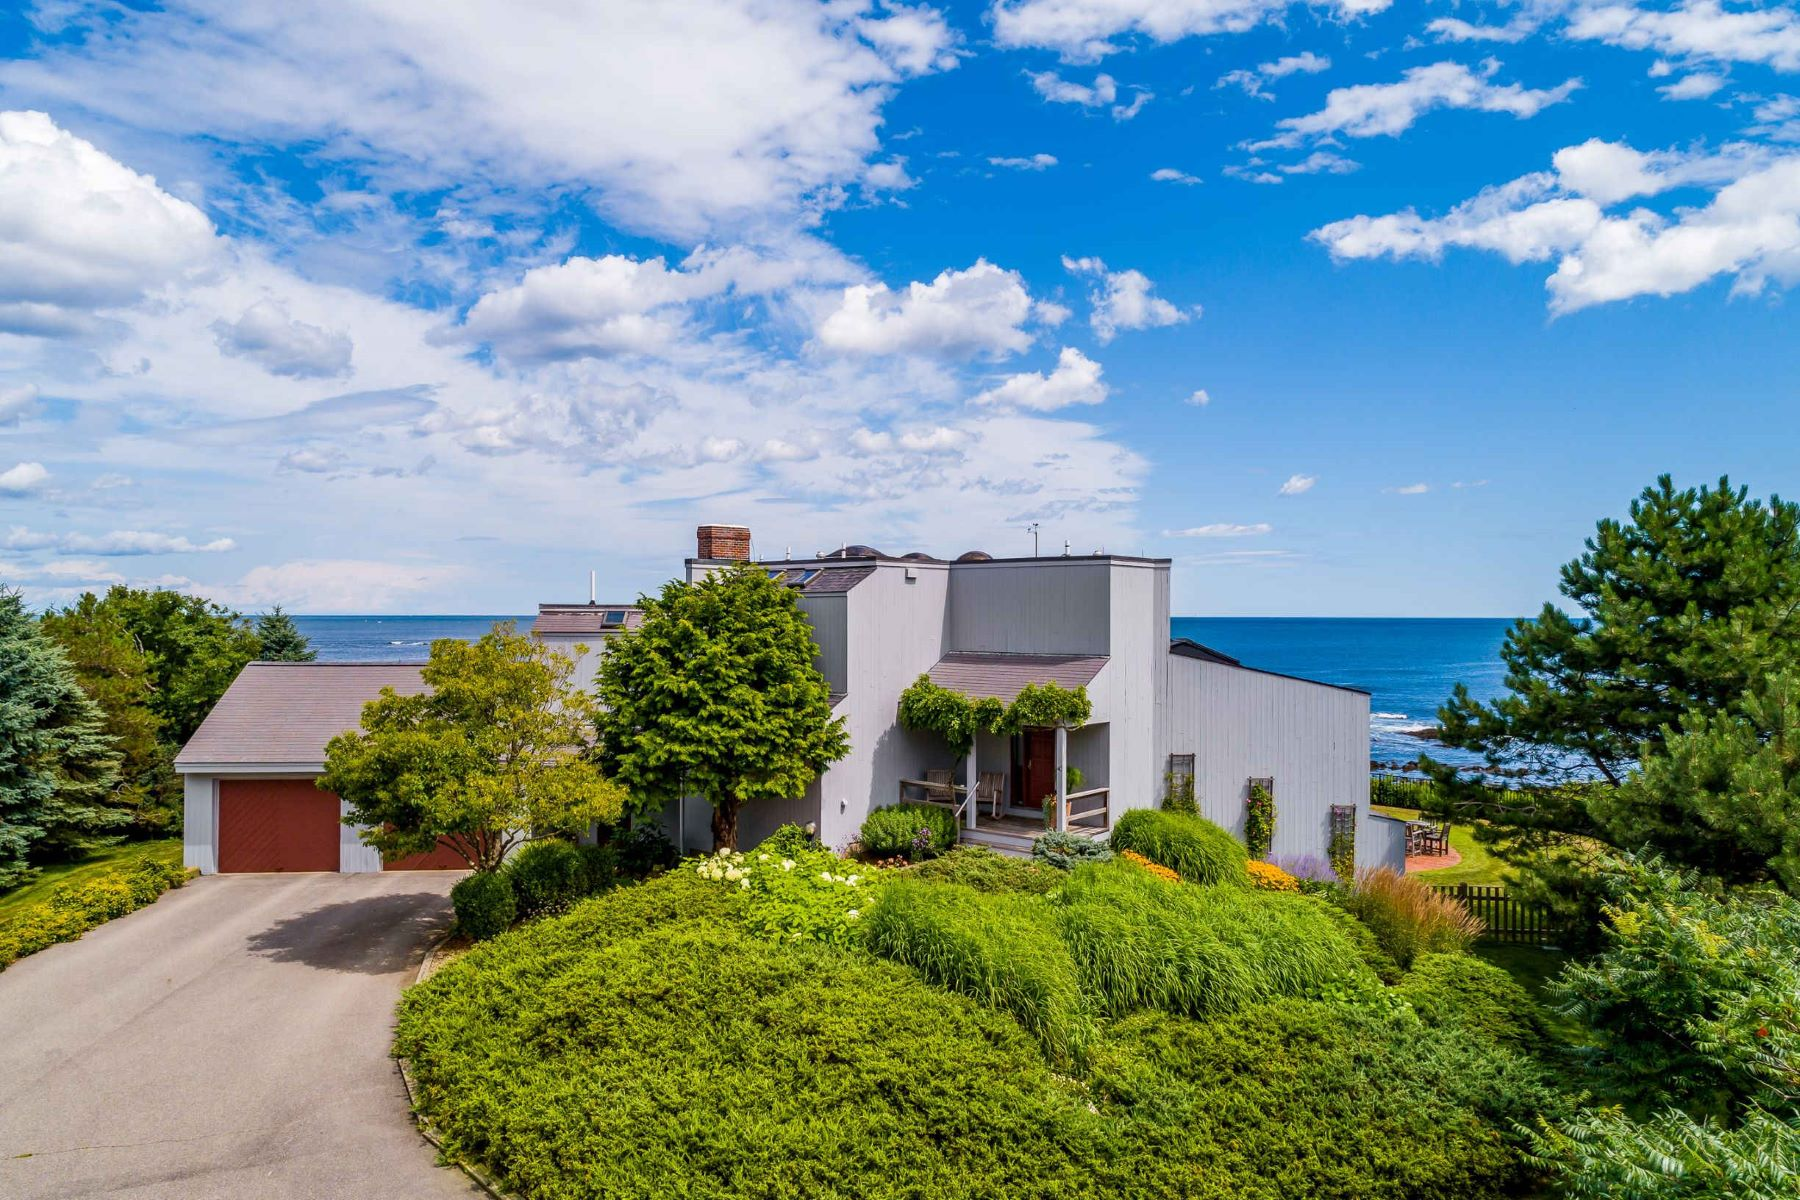 Single Family Homes for Sale at Oceanfront Contemporary with Bold Ocean Views 40 Lock Lane, York, Maine 03909 United States